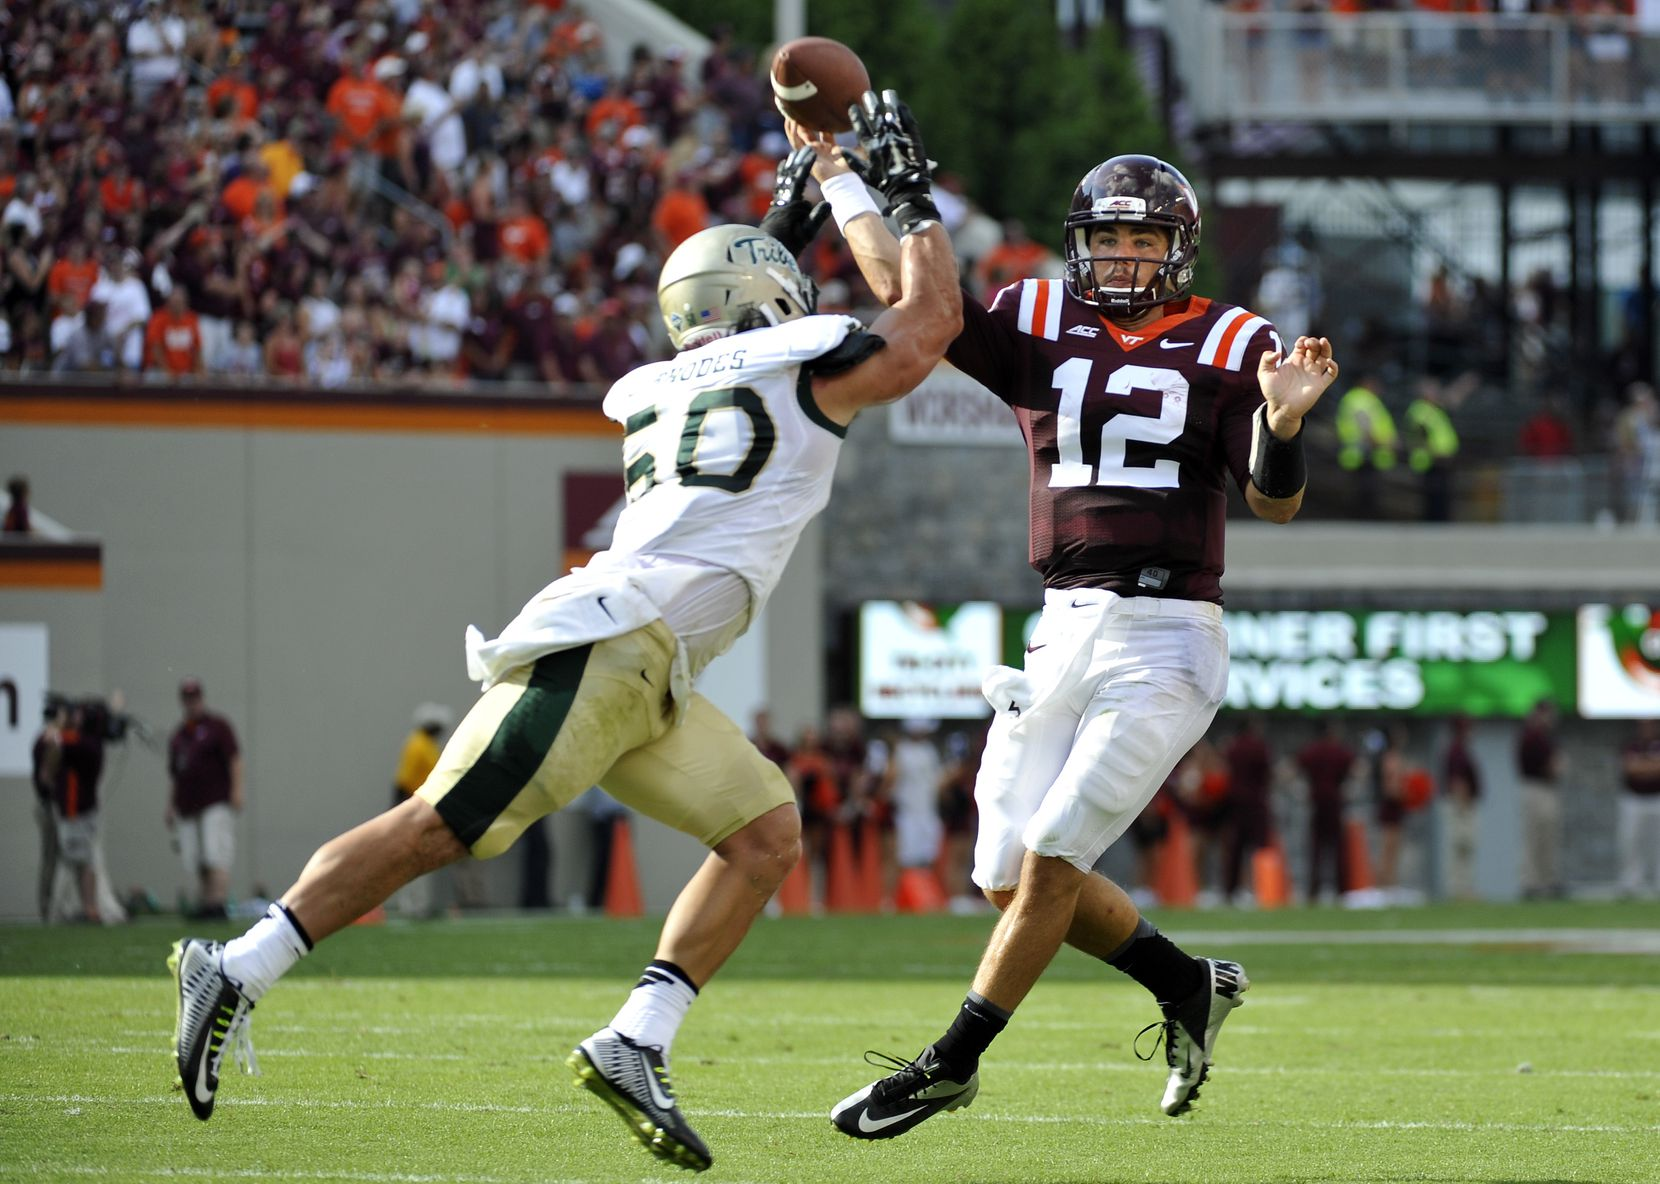 Quarterback Michael Brewer #12 of the Virginia Tech Hokies throws a pass over linebacker Luke Rhodes #50 of the William & Mary Tribe at Lane Stadium on August 30, 2014 in Blacksburg, Virginia. Virginia Tech defeated William & Mary 34-9.  (Photo by Michael Shroyer/Getty Images)